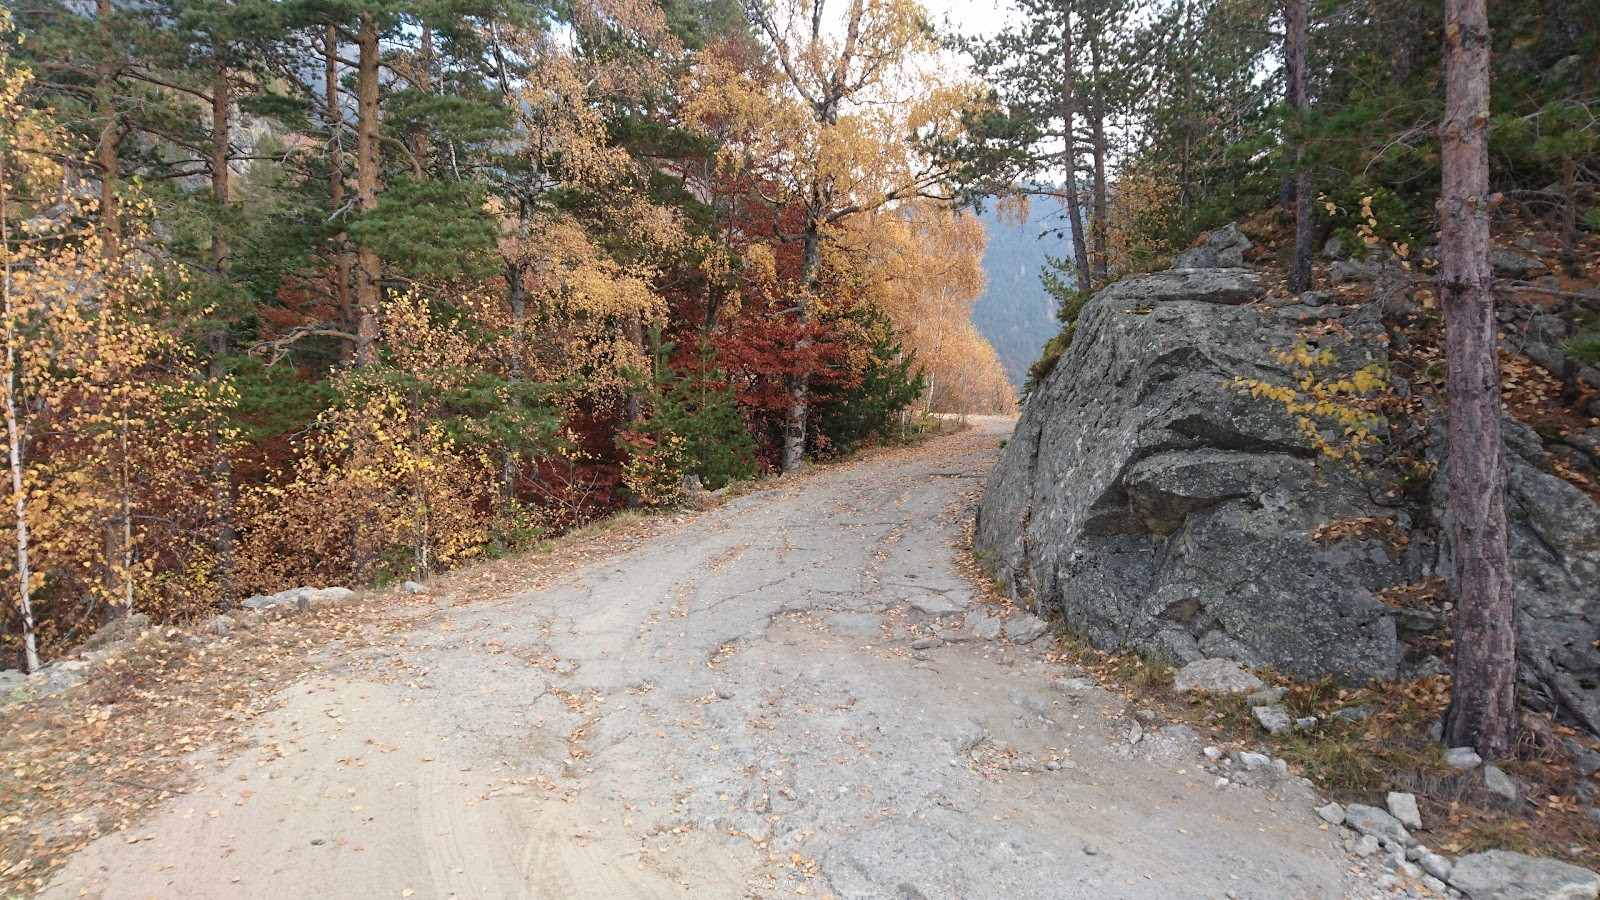 Rough Road and fall colors on leaves of trees on bicycle climb to Rila